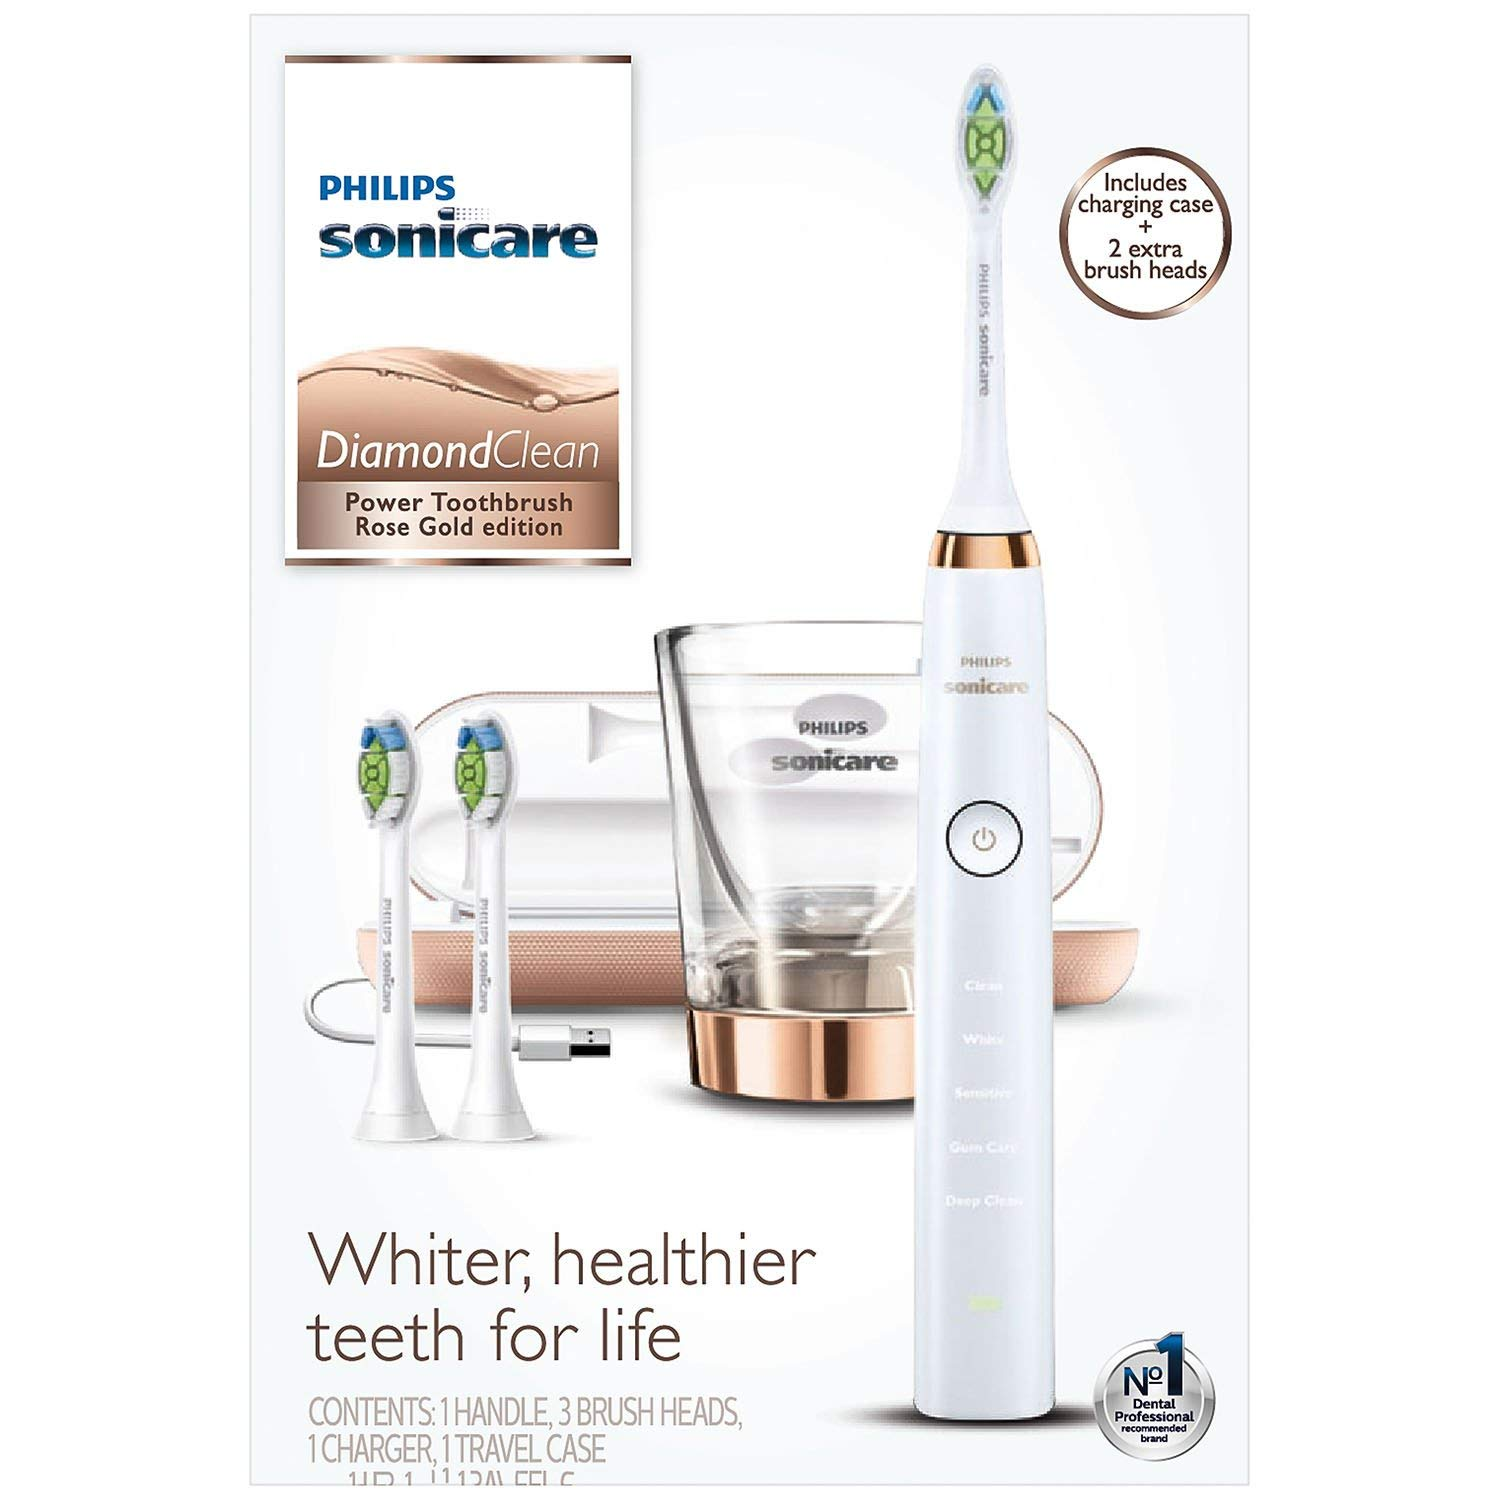 Philips Sonicare DiamondClean Power Toothbrush with Travel Charging Case - Gold